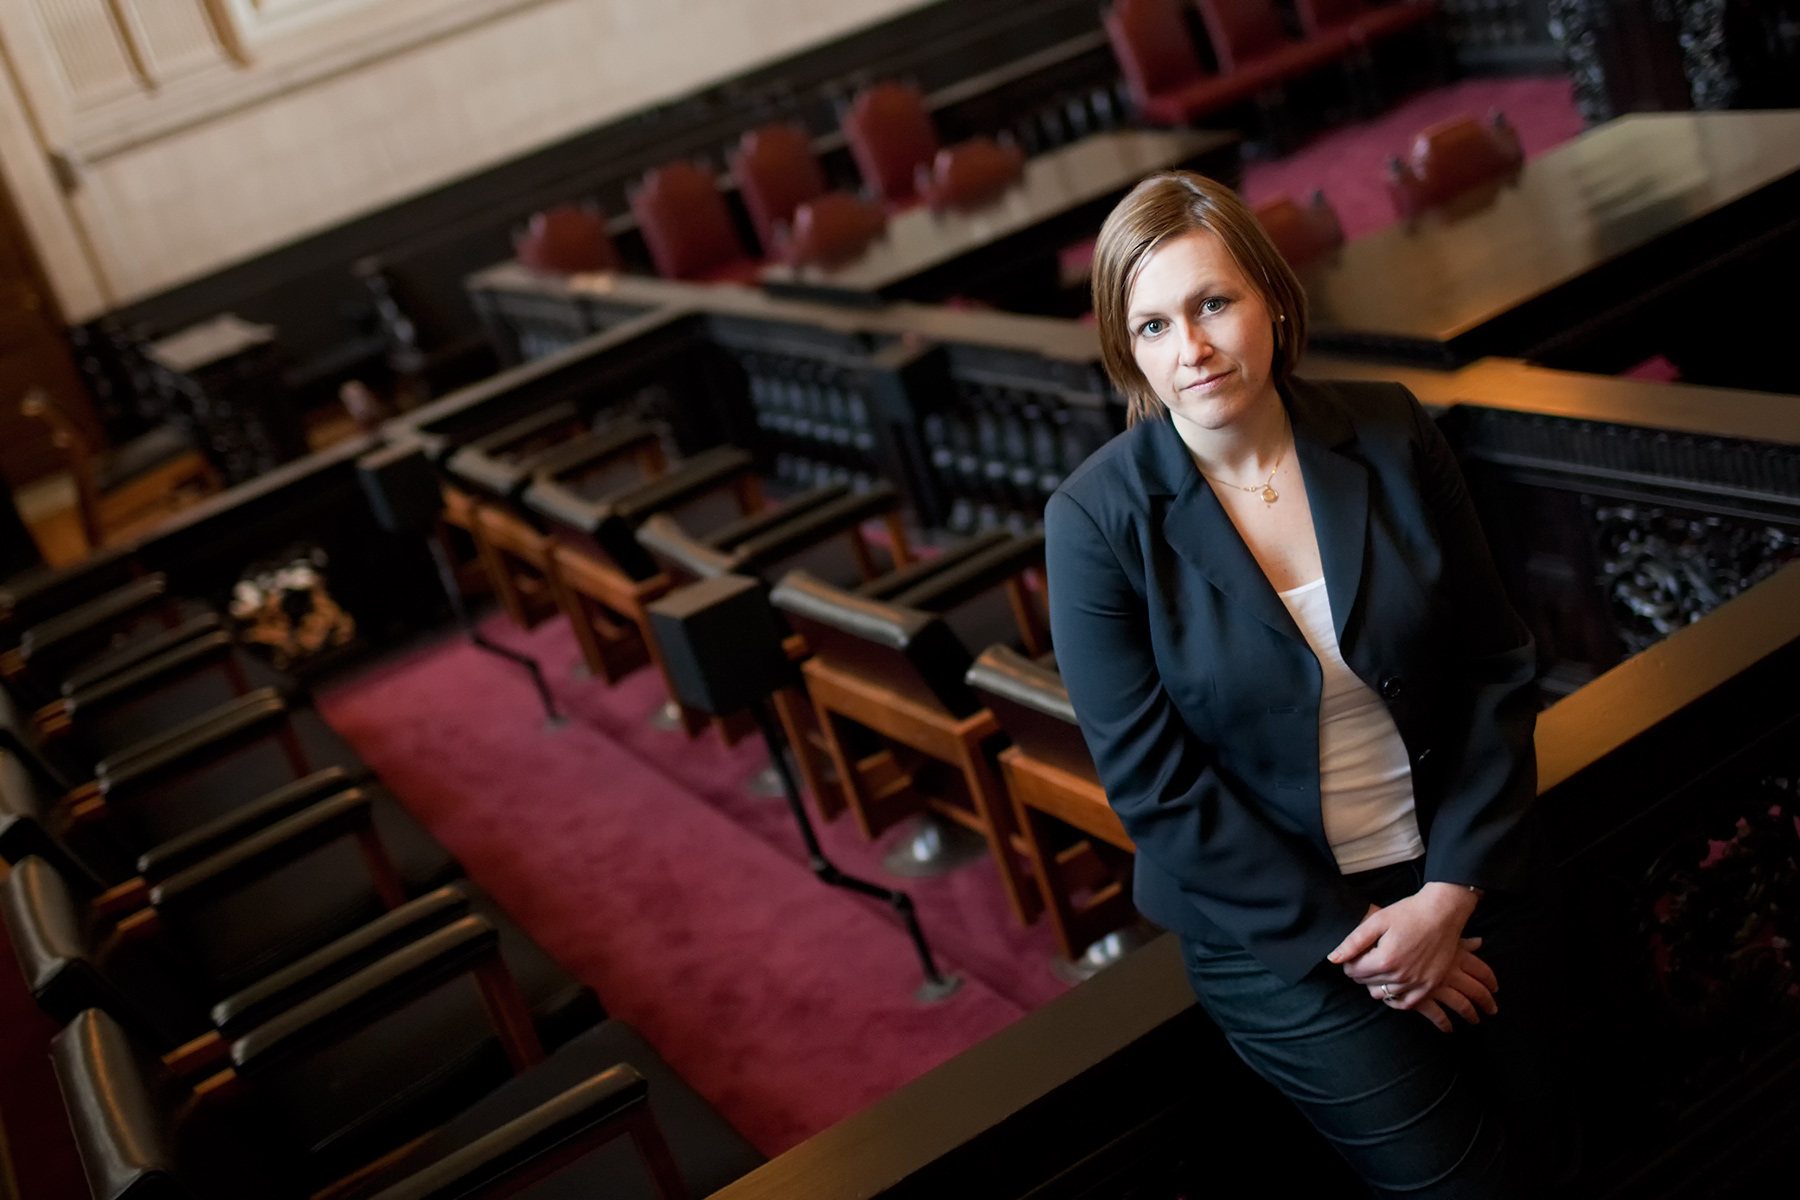 Editorial portrait for the National Law Journal of female lawyer in courtroom, Portland Maine